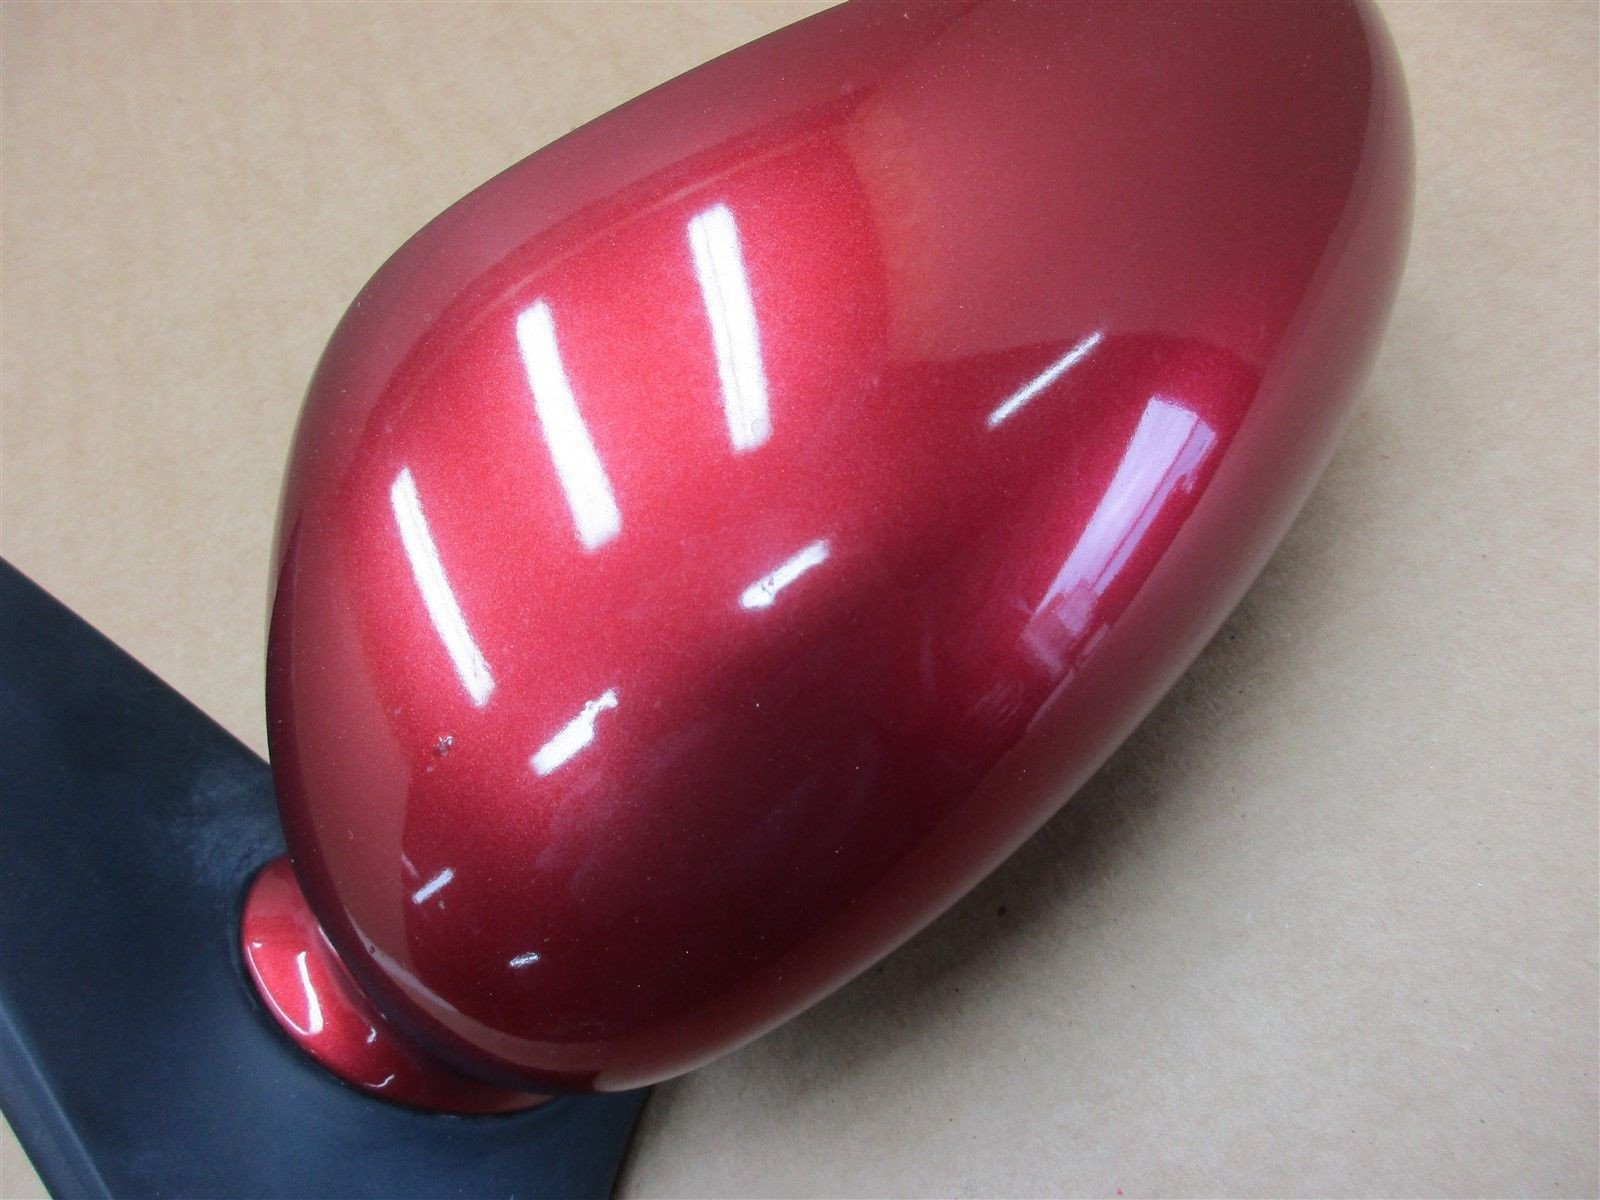 00 Boxster RWD Porsche 986 L EXTERIOR REAR VIEW MIRROR HOUSING Maroon 129,445